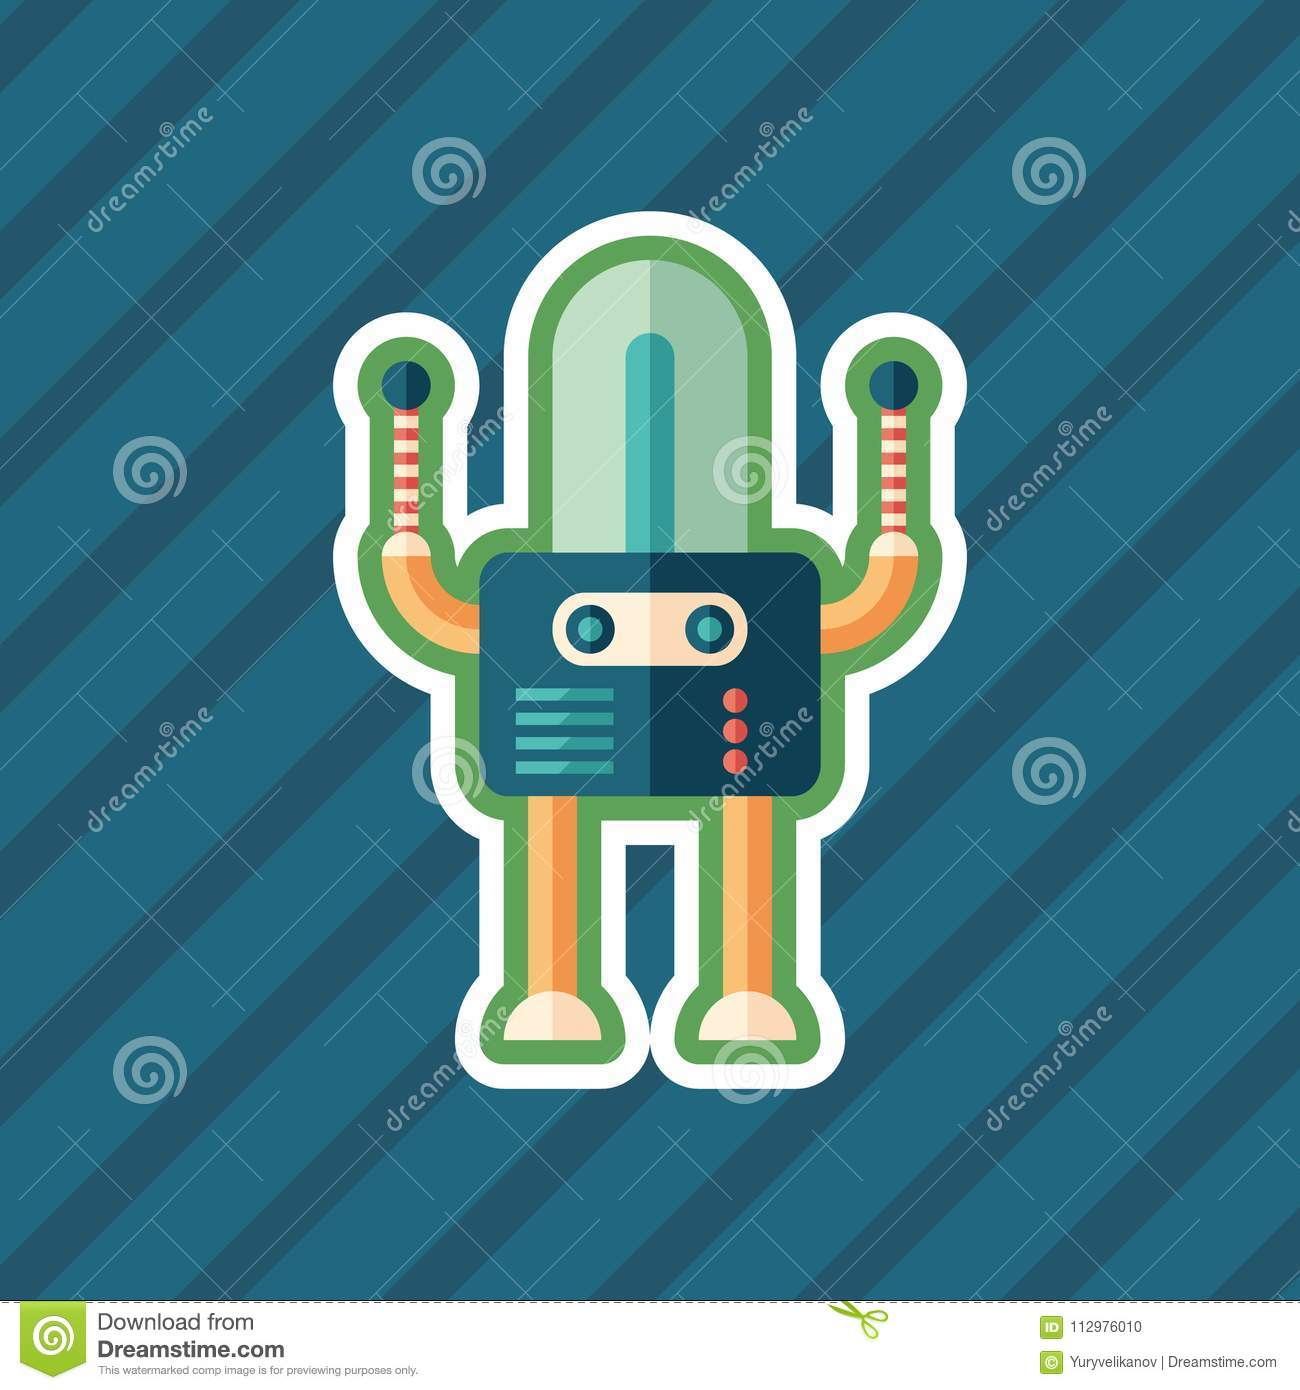 Guard robot sticker flat icon with color background.